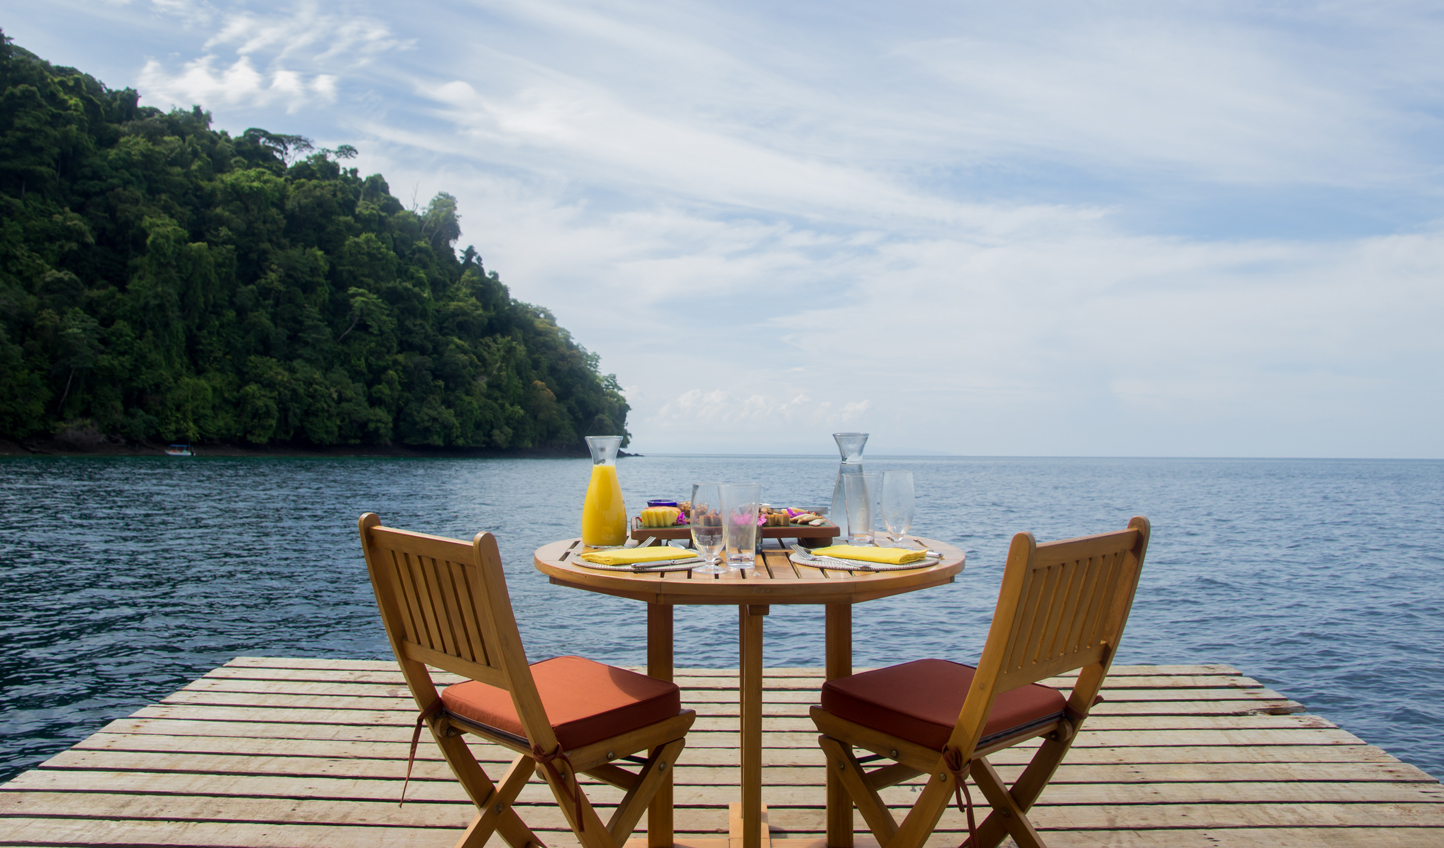 Watch dolphins while you dine on the dock